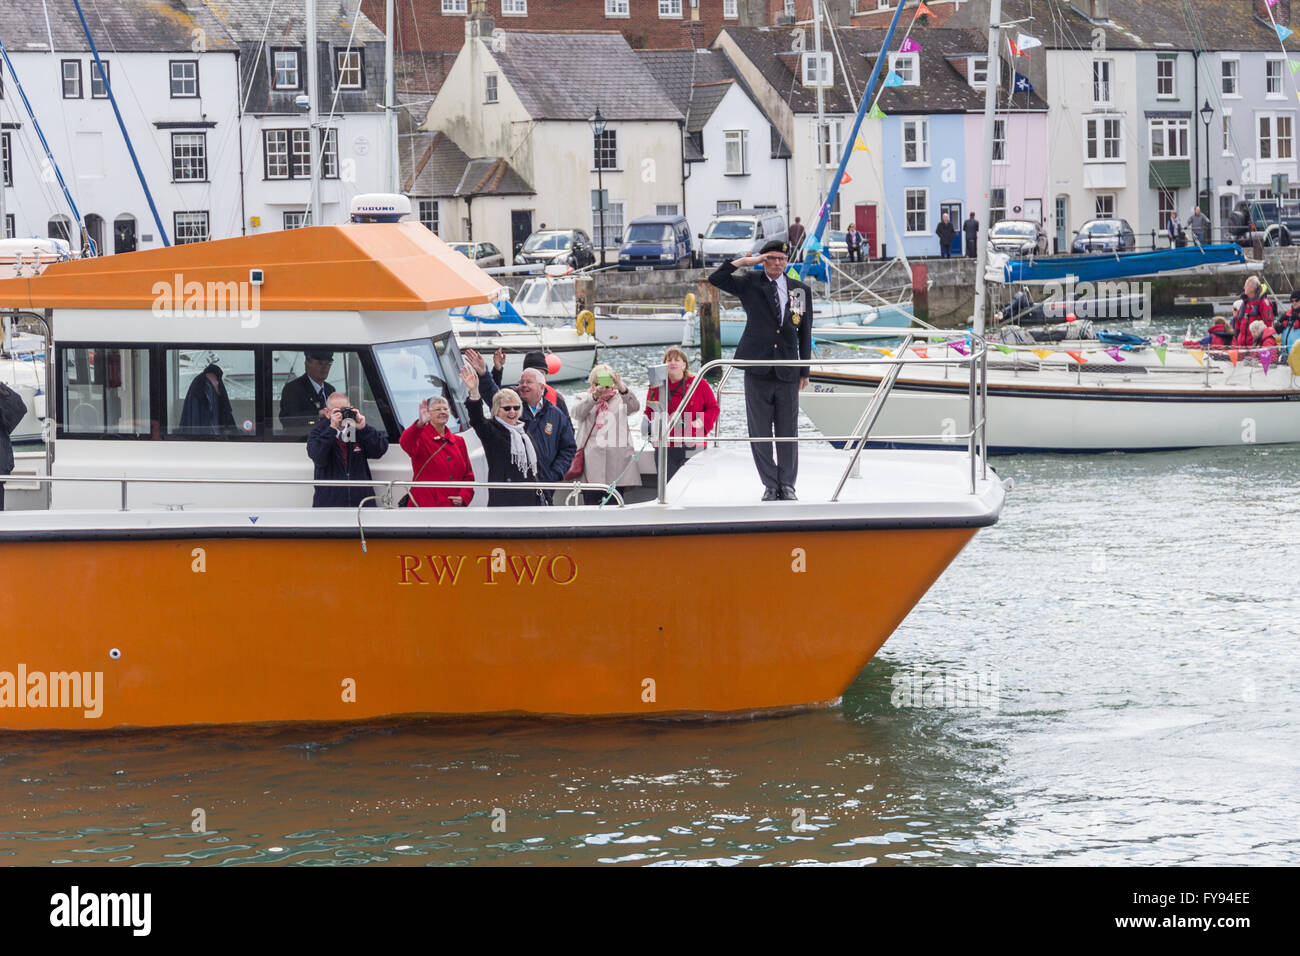 Weymouth, England. 23 April 2016. Queen's 90th Birthday Floating Tribute. RW Two, people waving, man saluting. - Stock Image